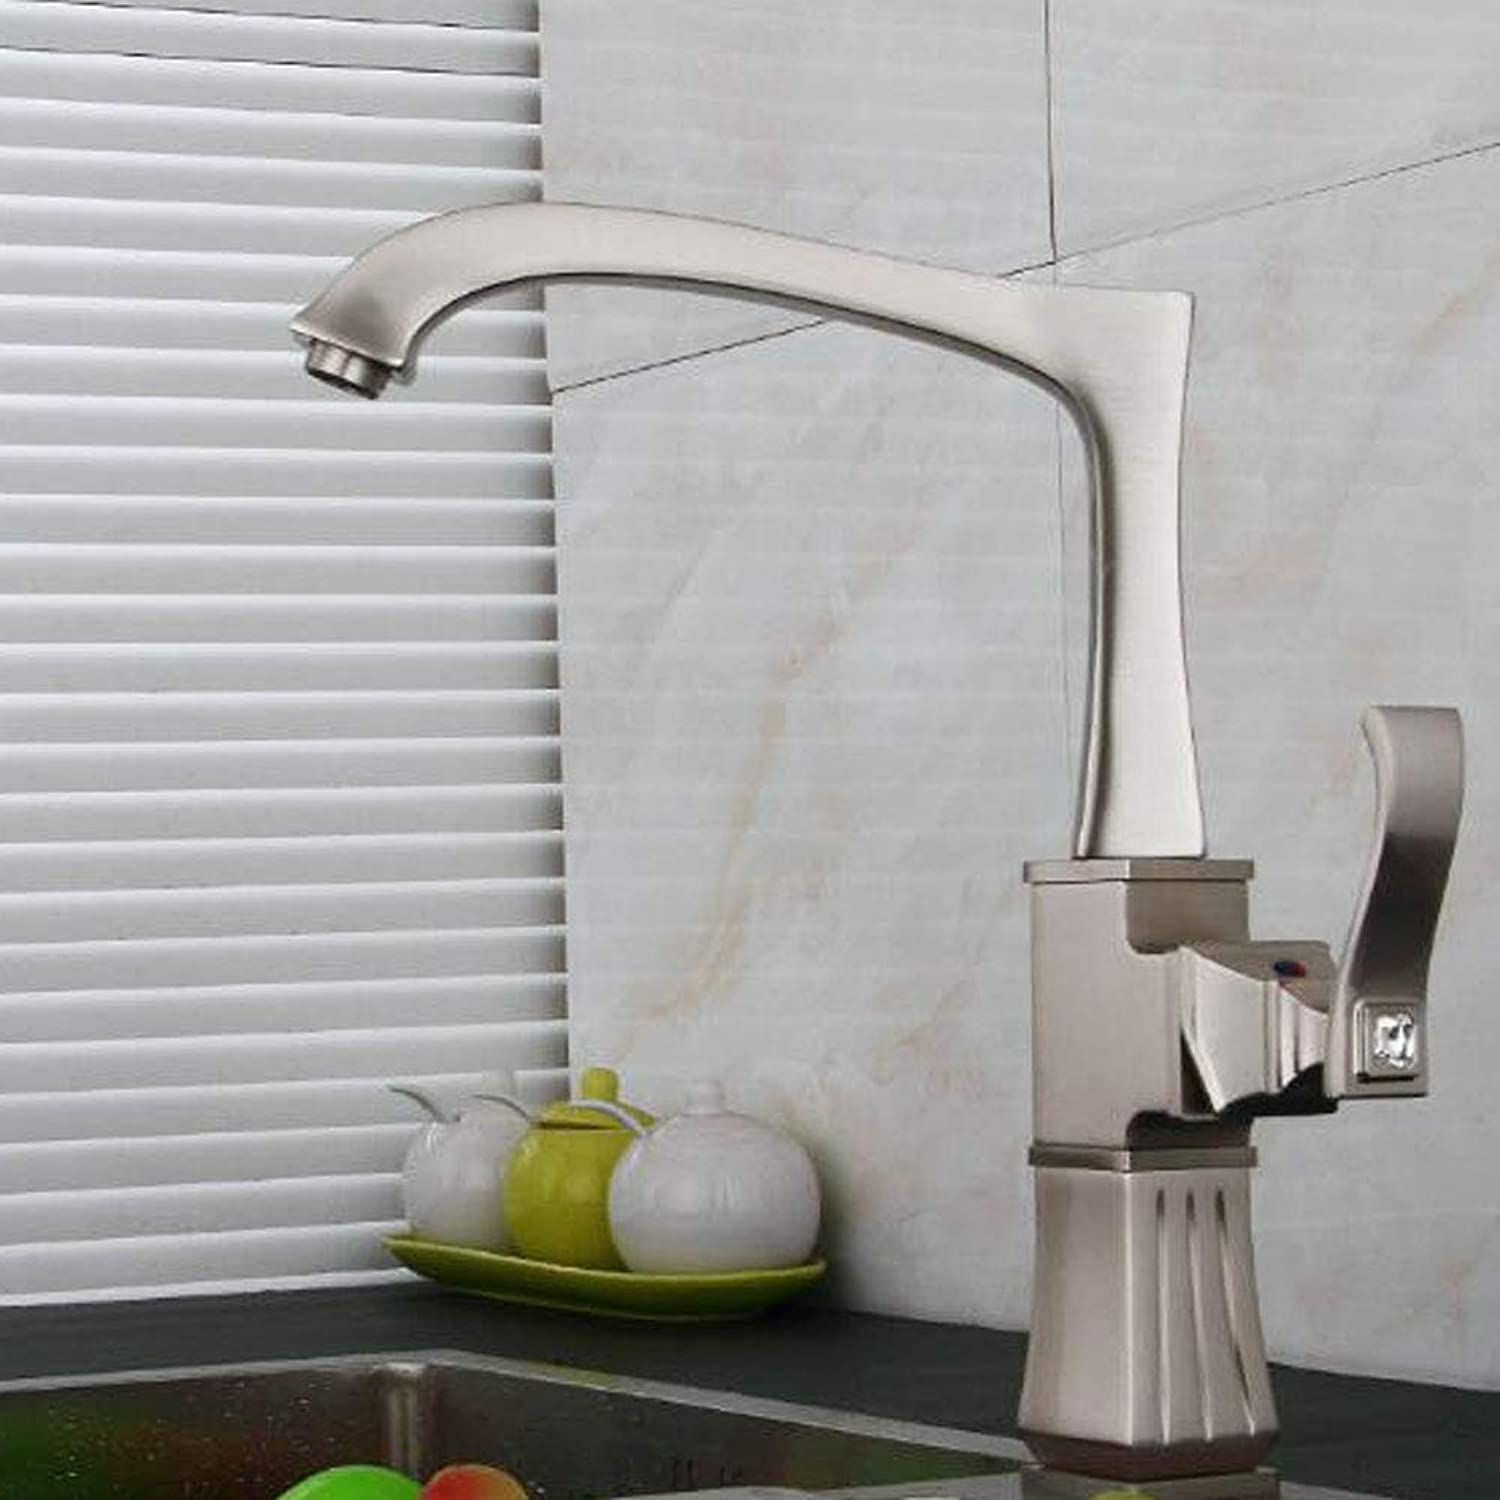 MMBFBS 360°Swivel Kitchen Mixer Tap all Brass Brushed Diamond Hot and Cold Sink Faucet,MetallicFaucet